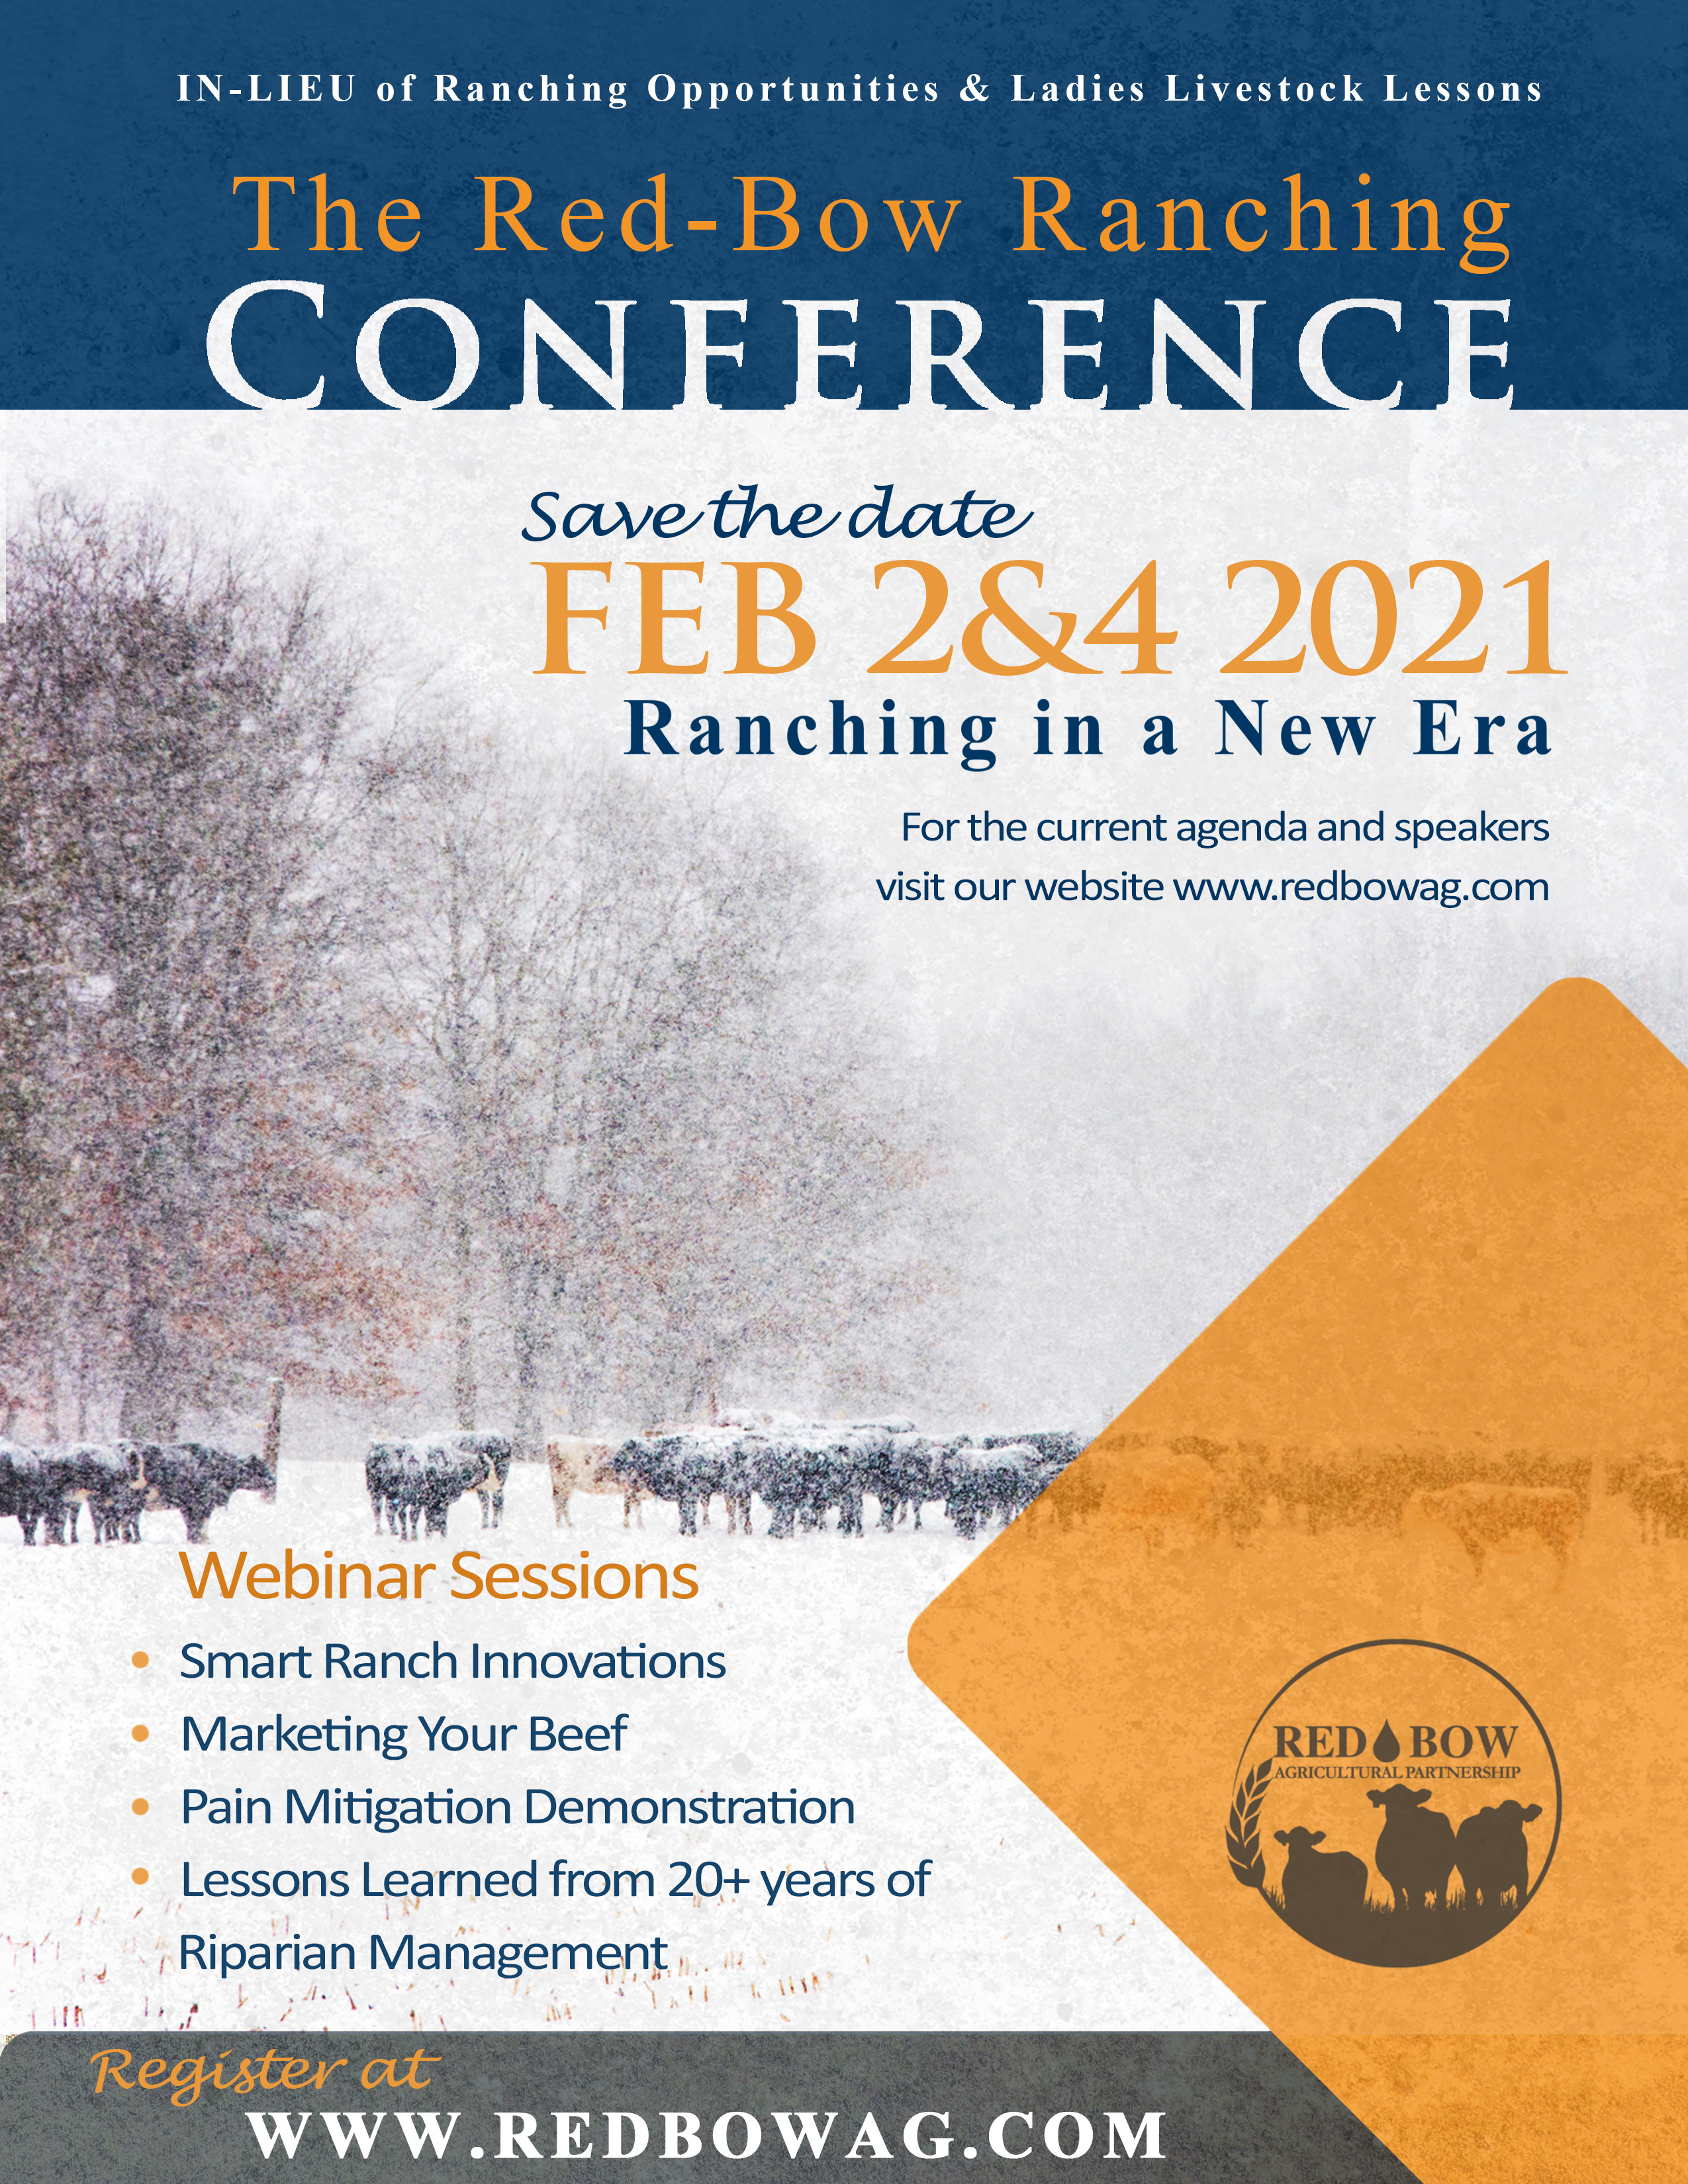 The Red-Bow Ranching Conference (virtual event in-lieu of Ranching Opportunities and Ladies Livestock Lessons)